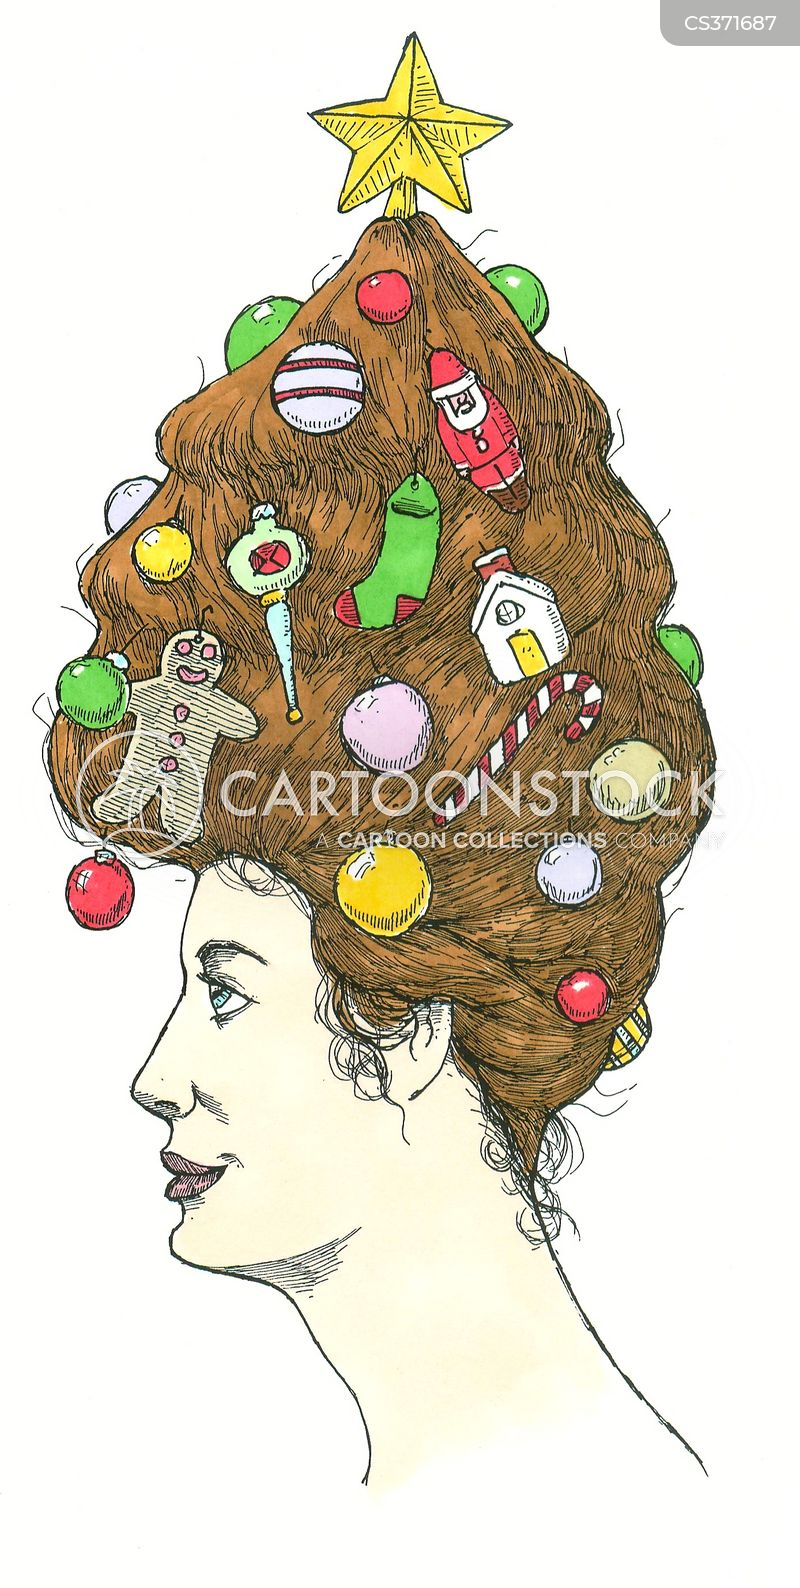 Frisuren Cartoon, Frisuren Cartoons, Frisuren Bild, Frisuren Bilder, Frisuren Karikatur, Frisuren Karikaturen, Frisuren Illustration, Frisuren Illustrationen, Frisuren Witzzeichnung, Frisuren Witzzeichnungen